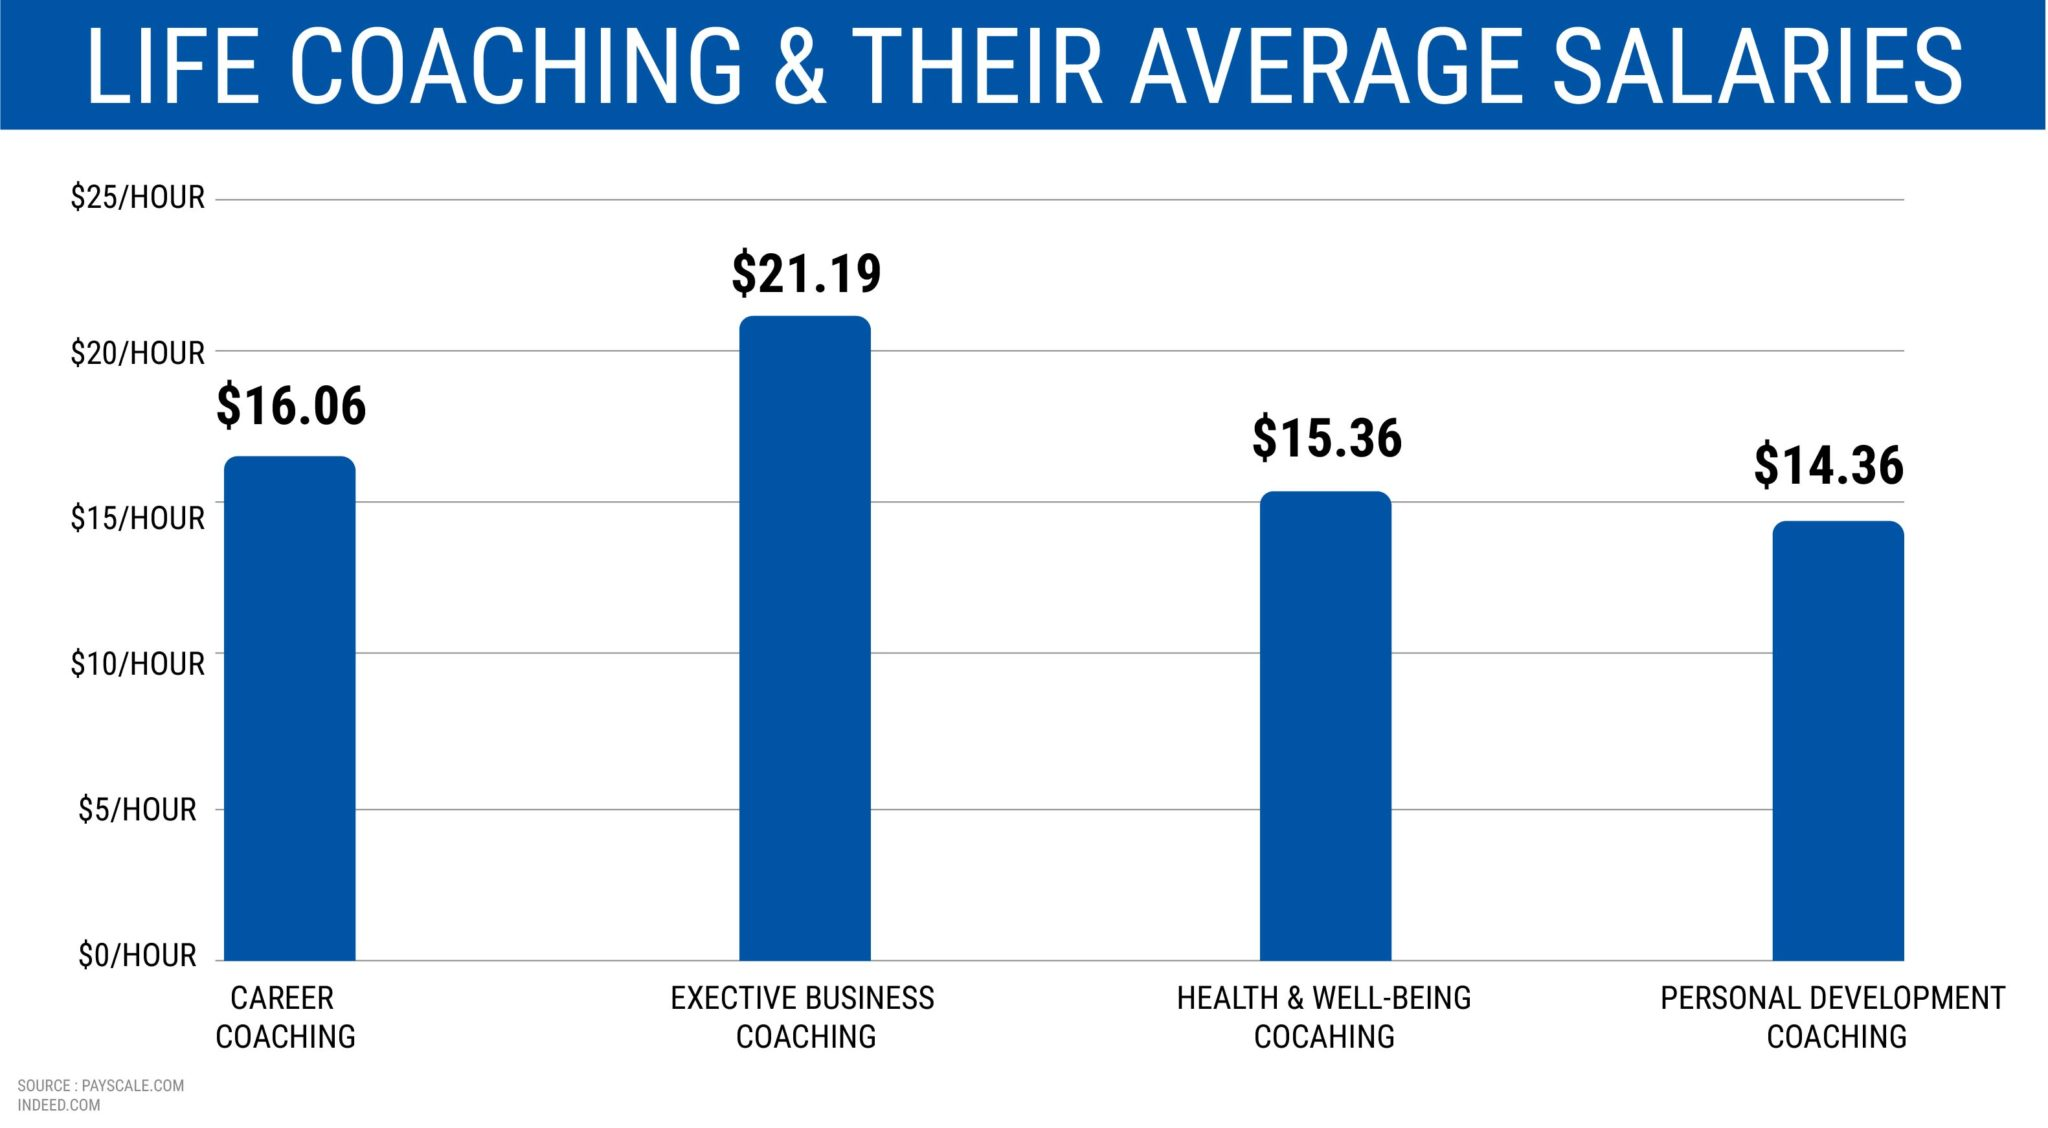 LIFE COACHING AND THEIR AVERAGE SALARIES